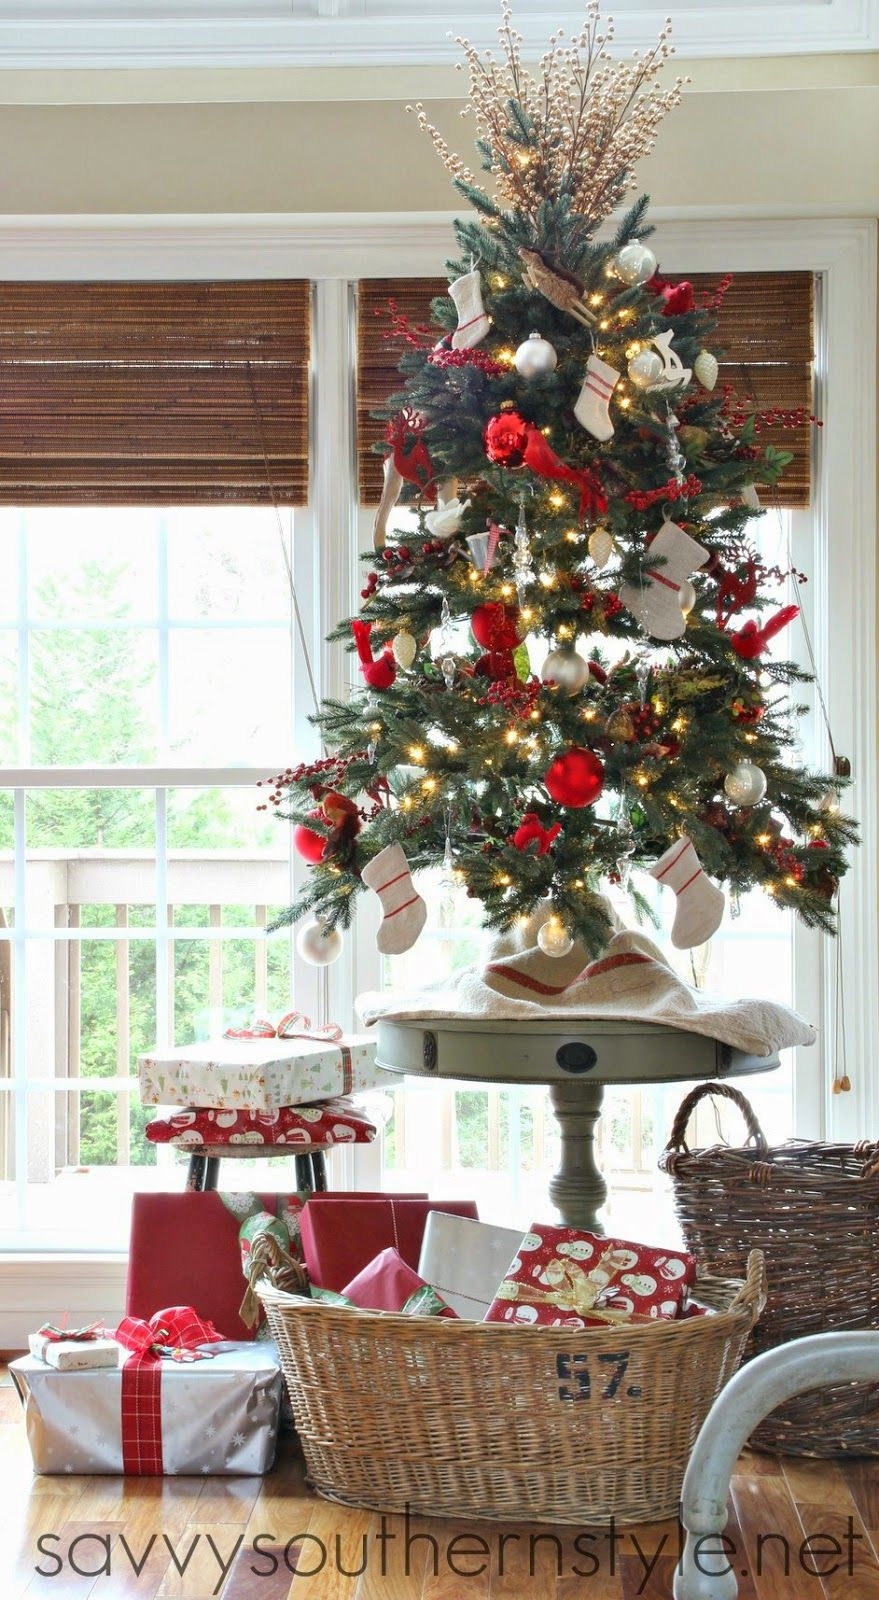 Savvy Southern Style Oh Little Christmas Tree & Oh Little Christmas Tree | Pinterest | Savvy southern style ...